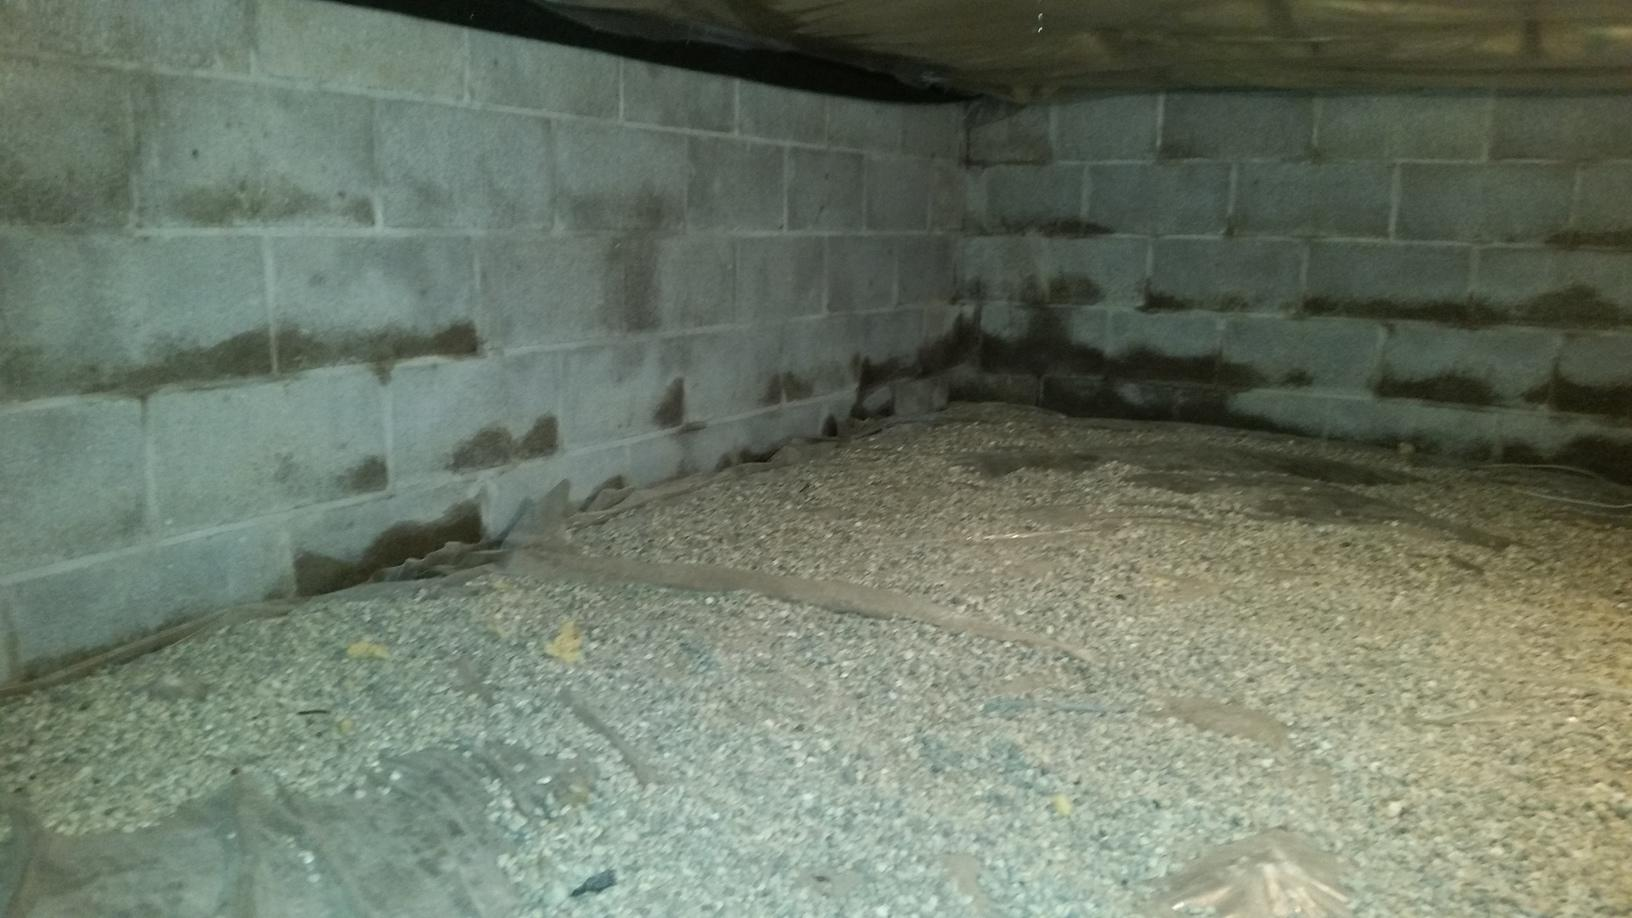 More water seepage in the crawl space through the walls which has lead to a damp, smelly crawl space.